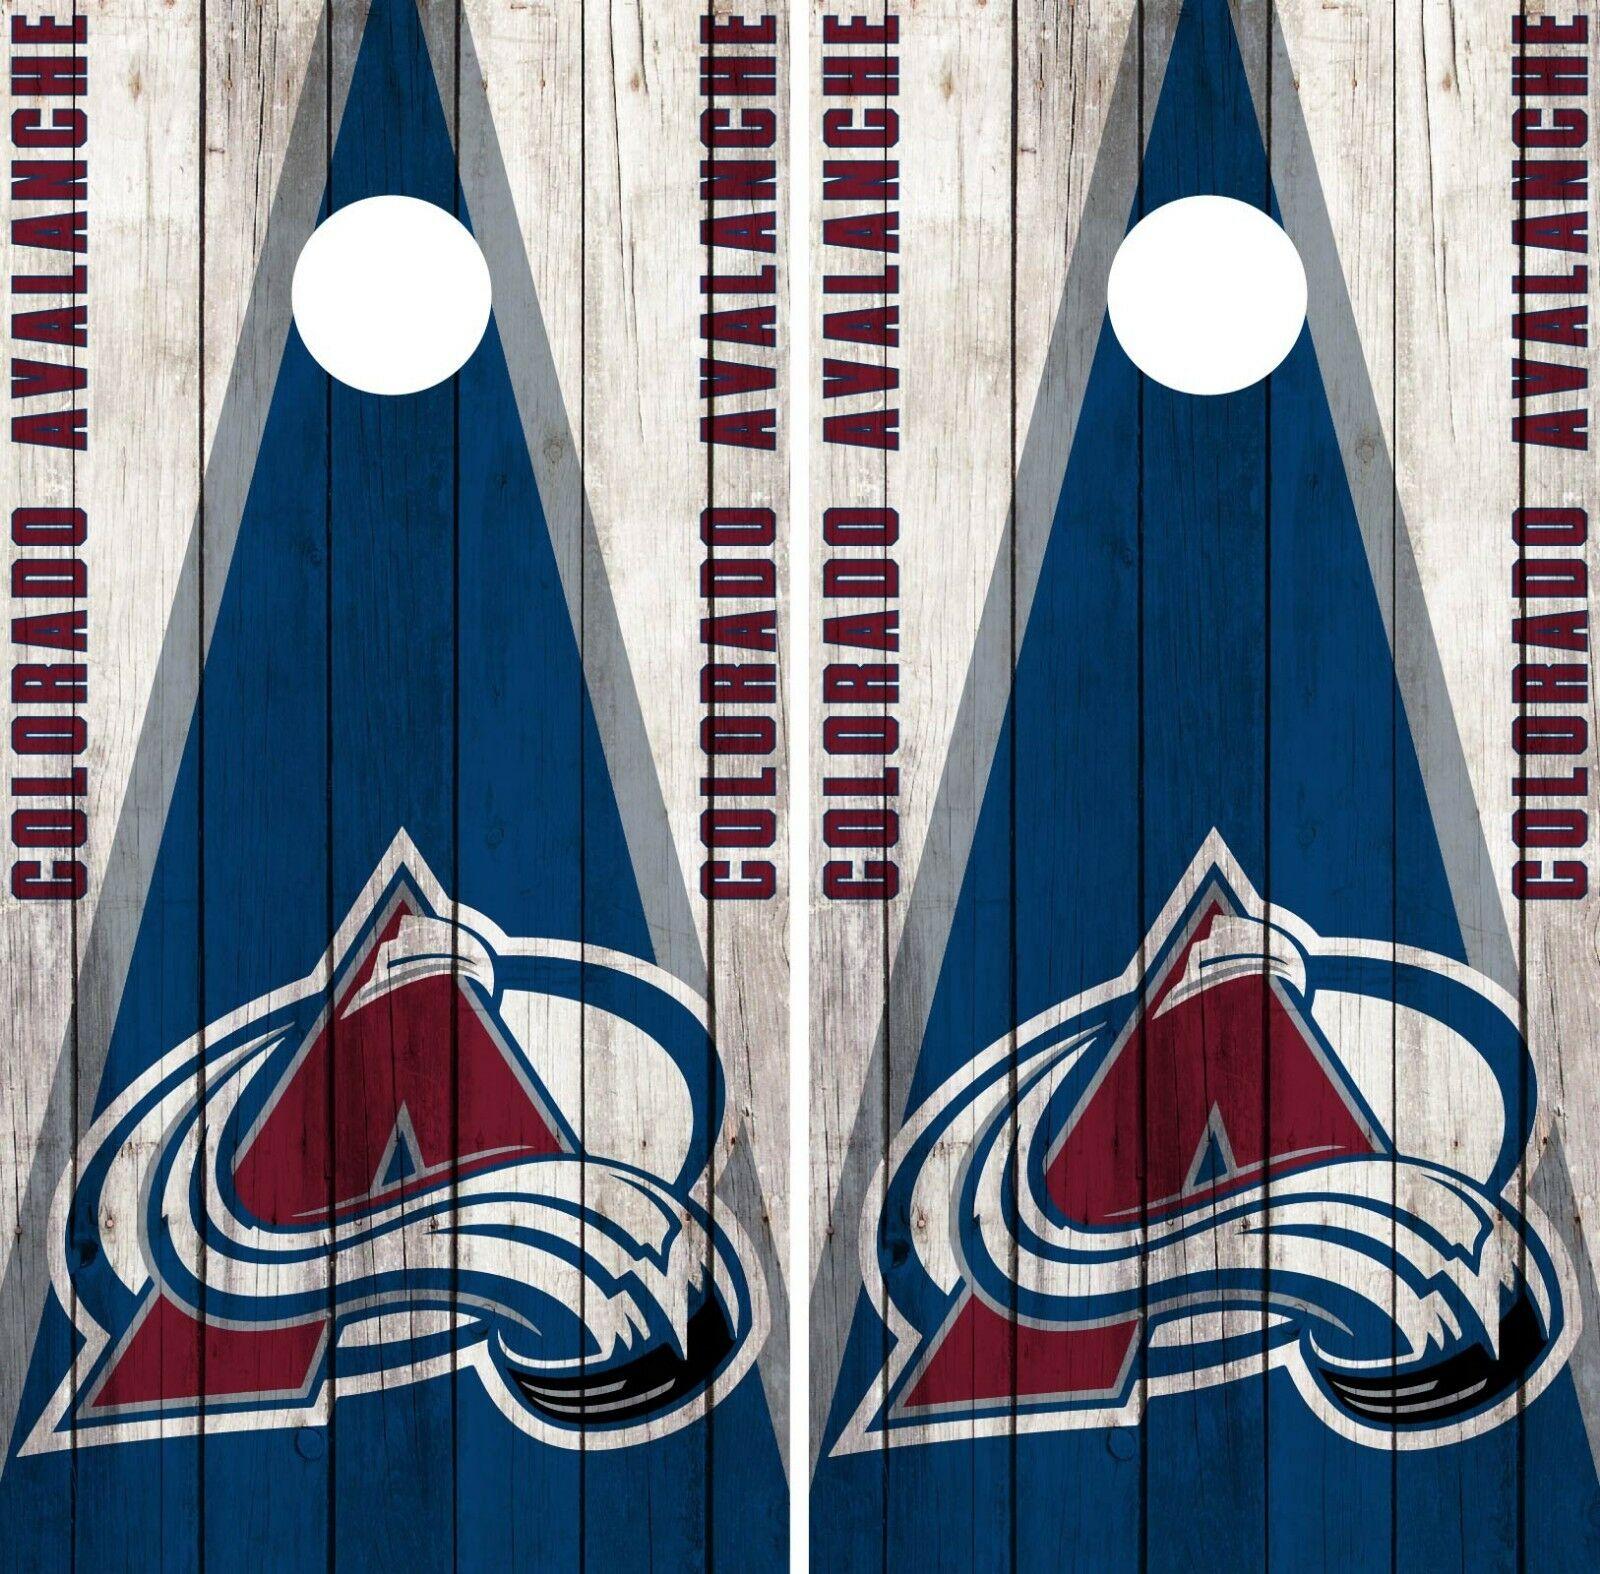 colorado Avalanche Cornhole Wrap NHL Vintage Game Skin Set Vinyl  Decal CO334  hastened to see